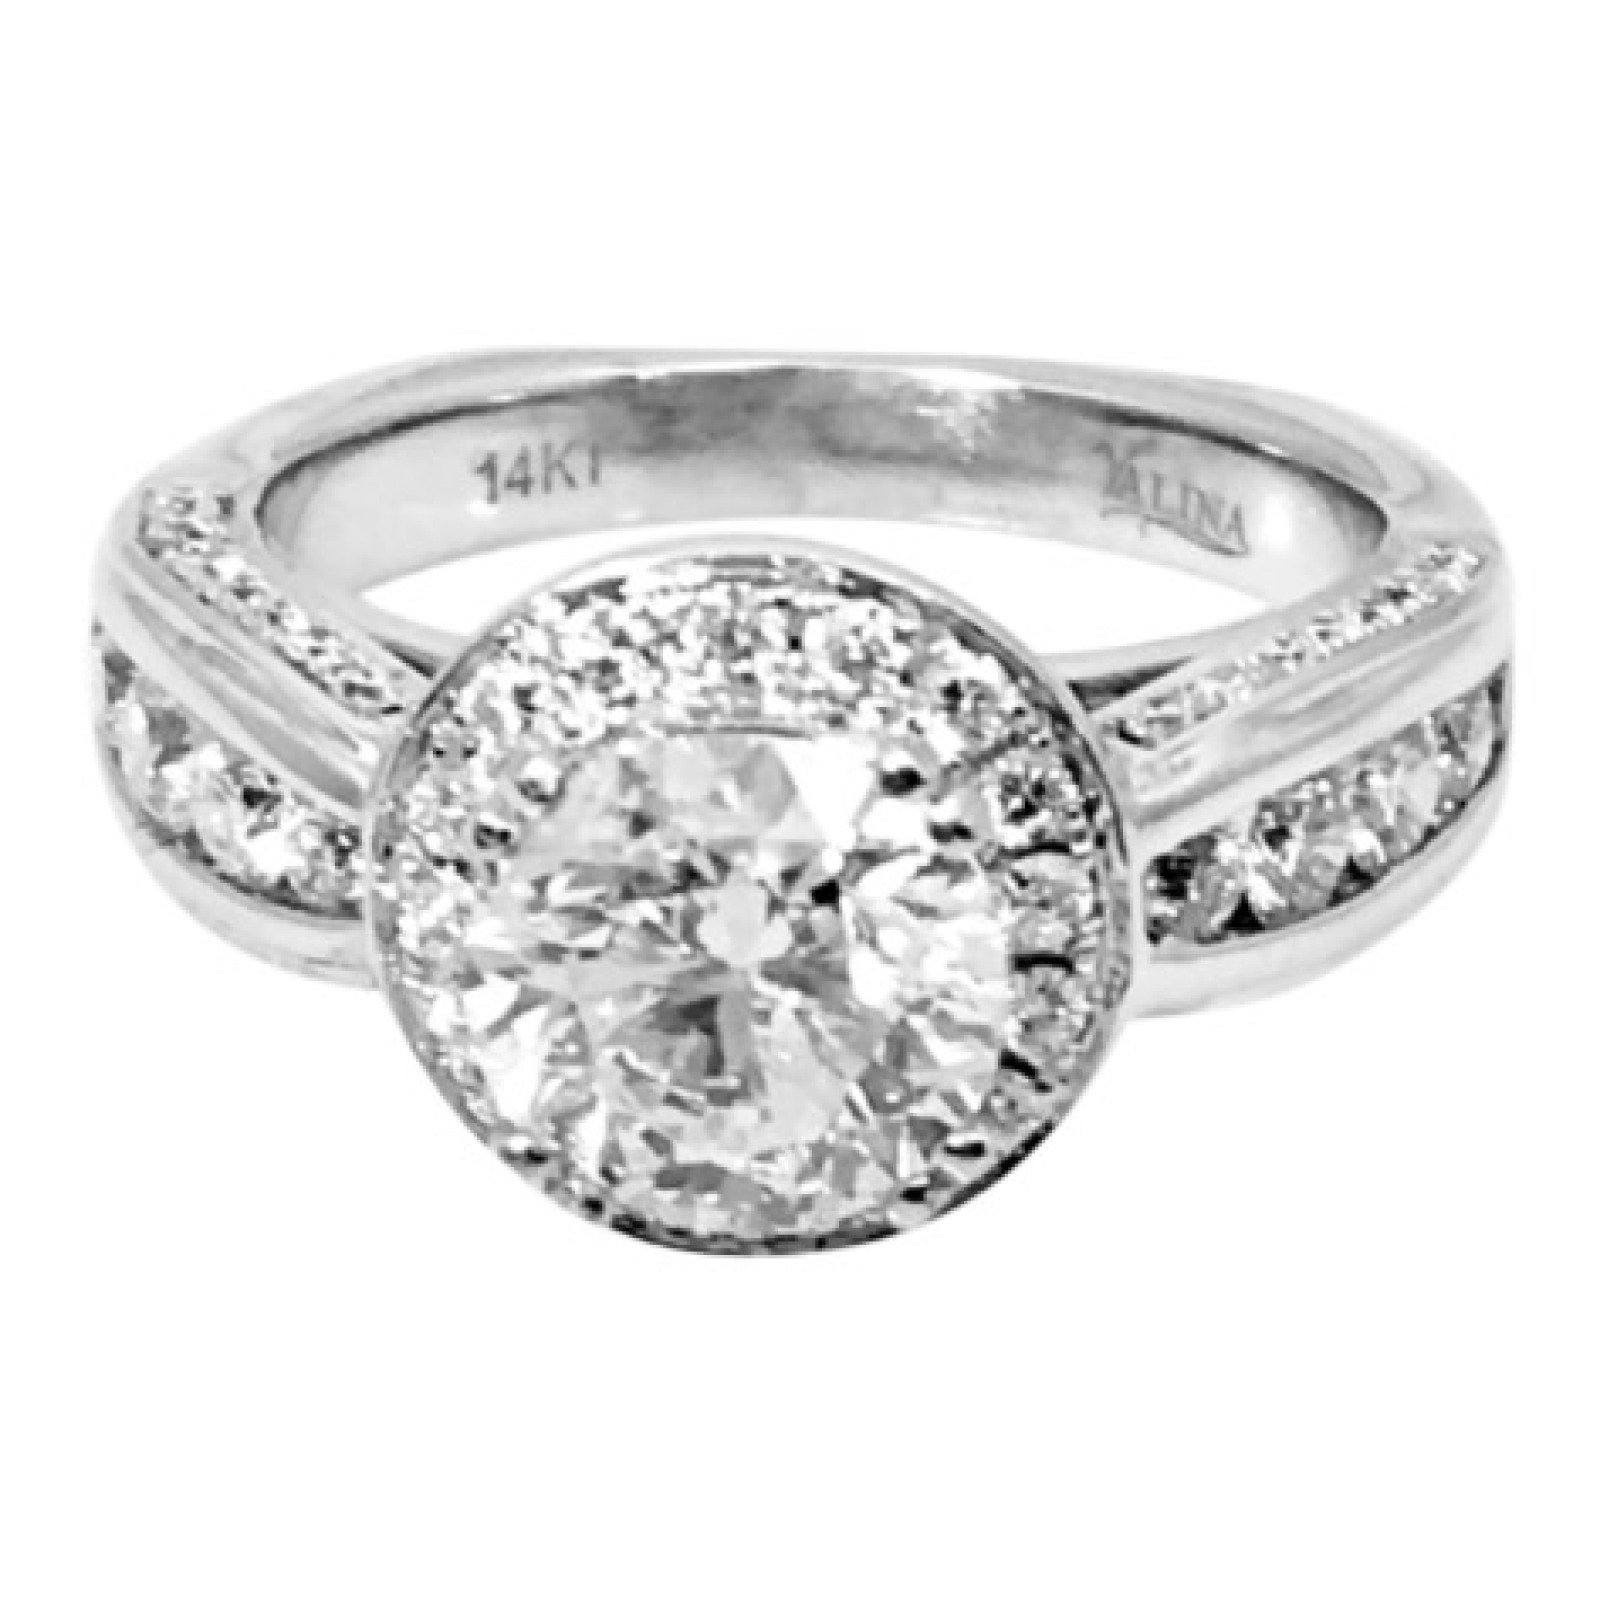 richard centres diamonds rings charm by diamond charmed ring calder product engagement